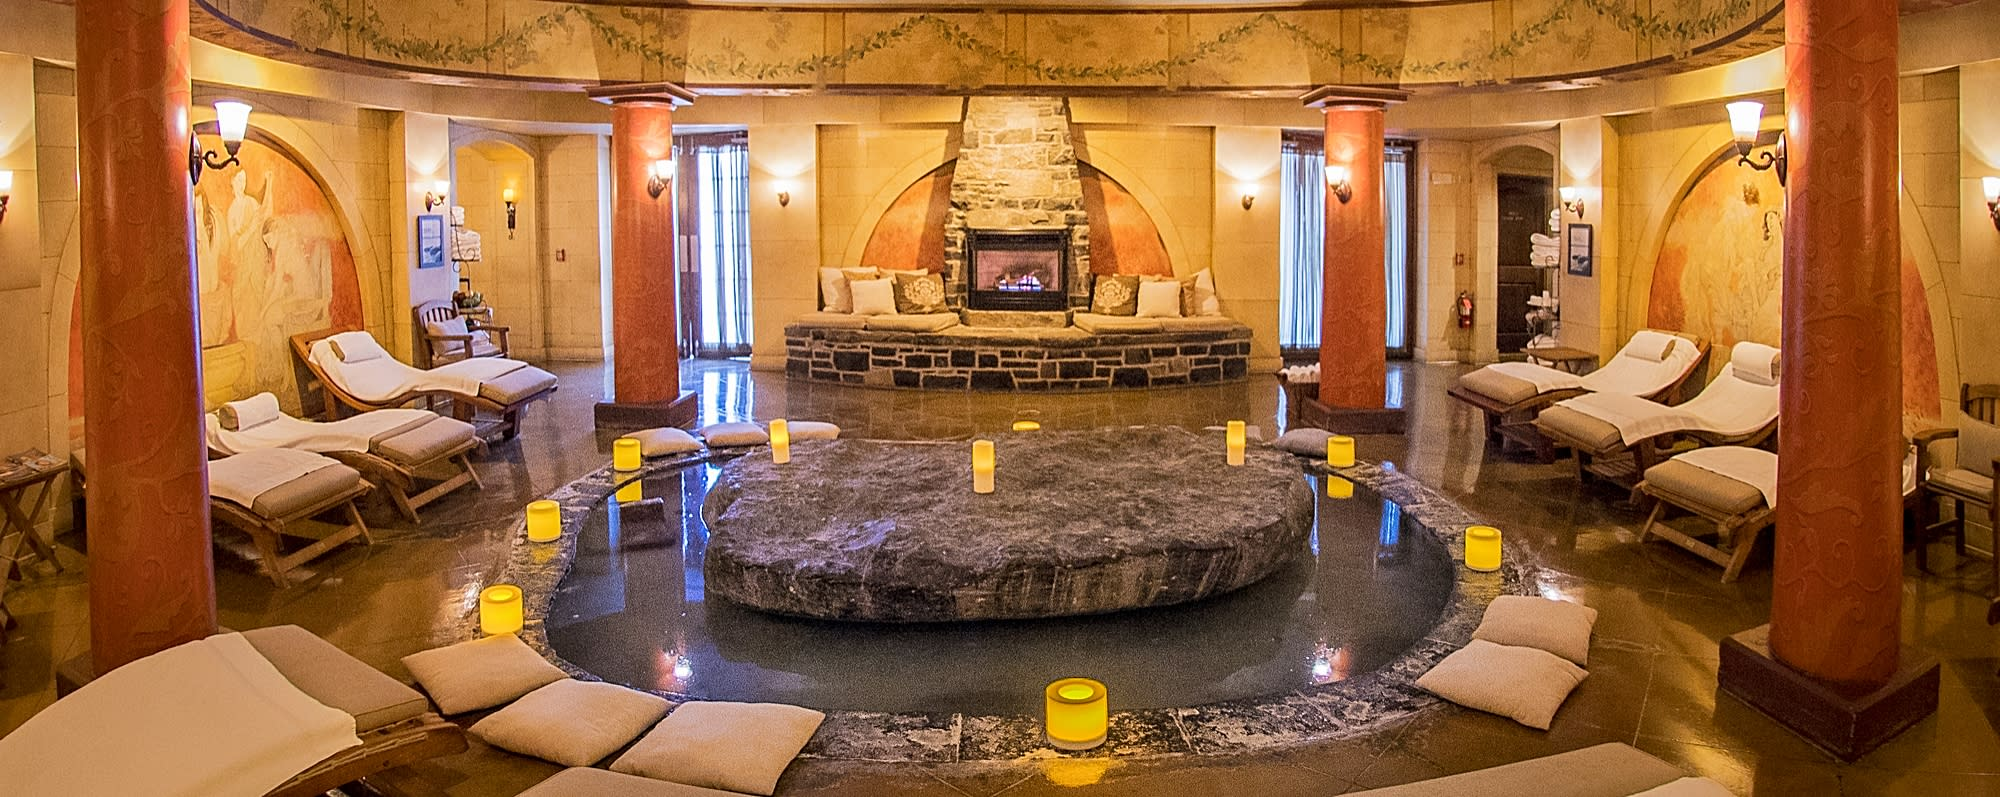 Mirbeau Inn and Spa - Rest and Relaxation Center